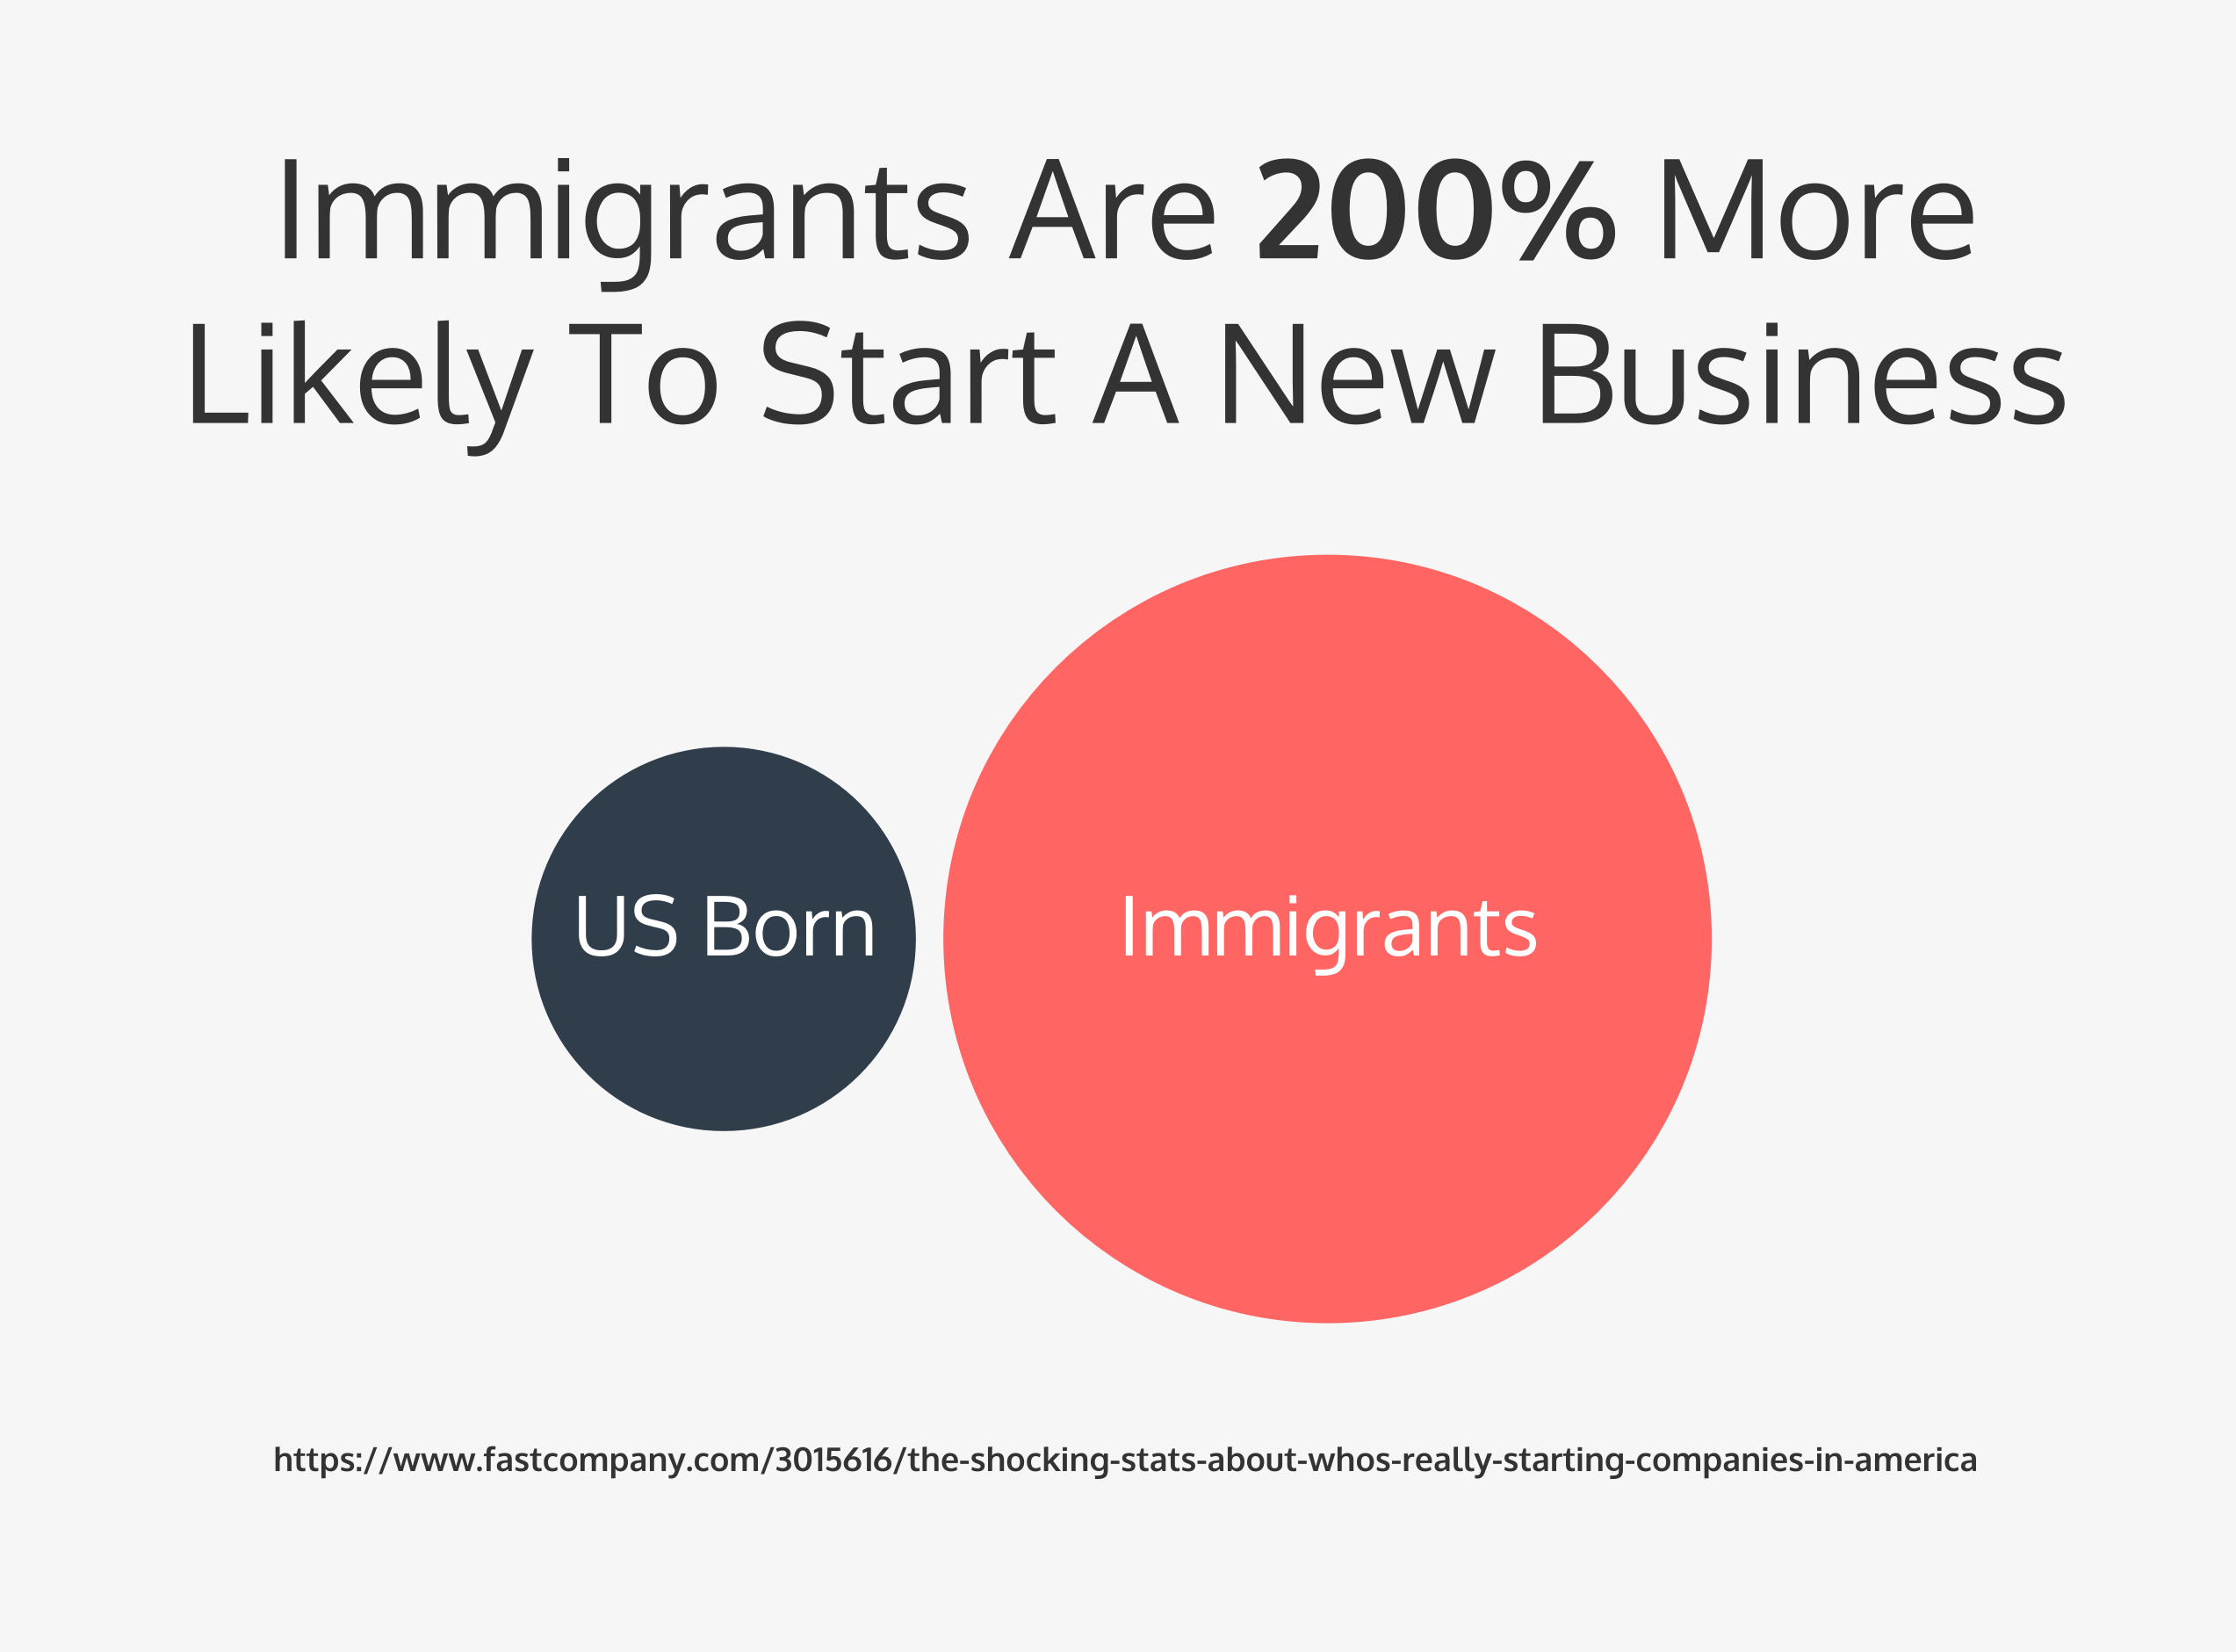 15 Charts Explaining Why Immigration is Good For Innovation